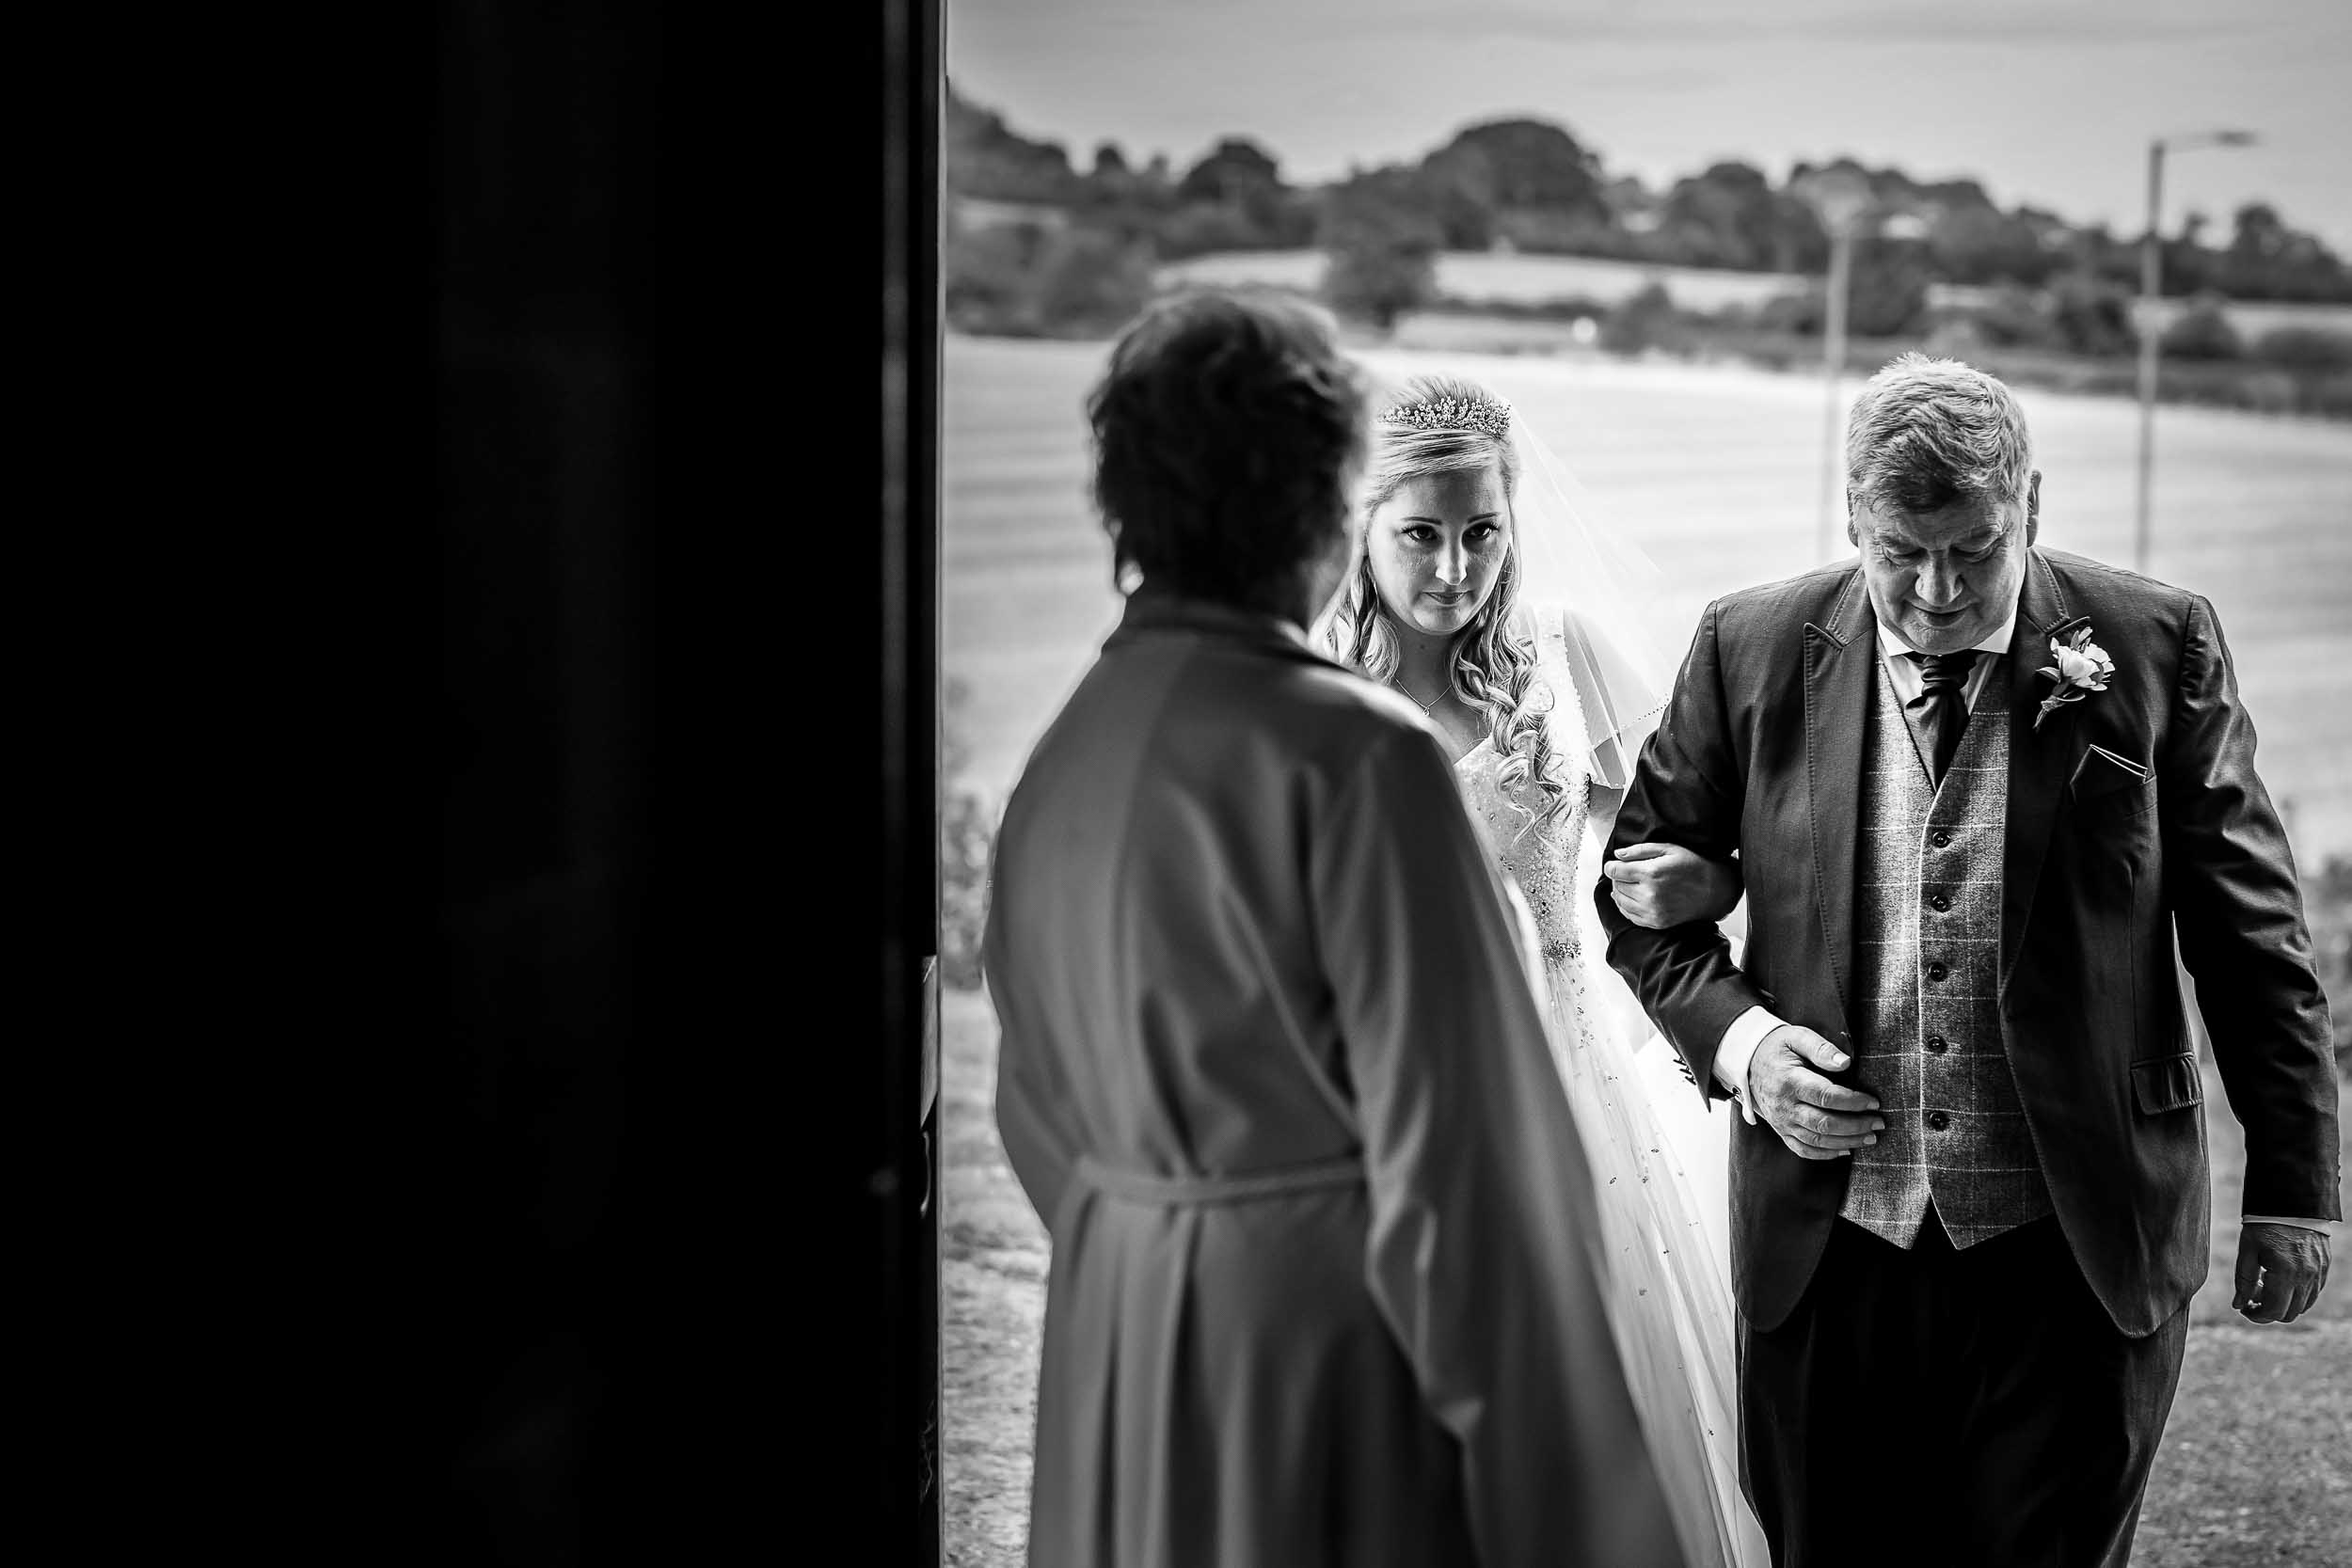 Munstone, House, Herefordshire, Wedding, Weddings, Wedding Photographers, Munstone House wedding photographer, Herefordshire wedding photographer,